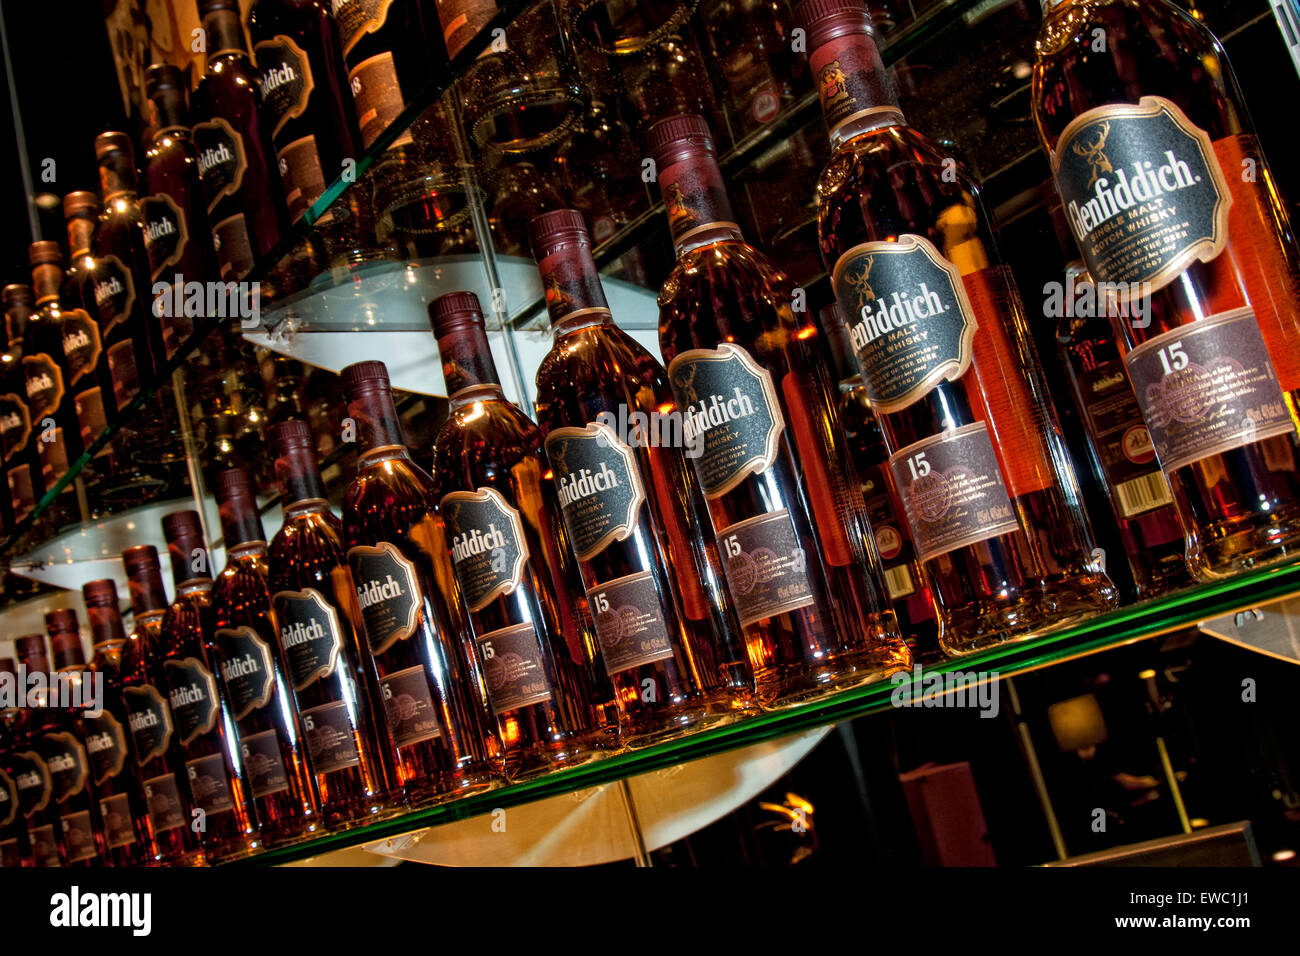 rows of Glenfiddich Whisky bottles 15 year old on a back bar - Stock Image